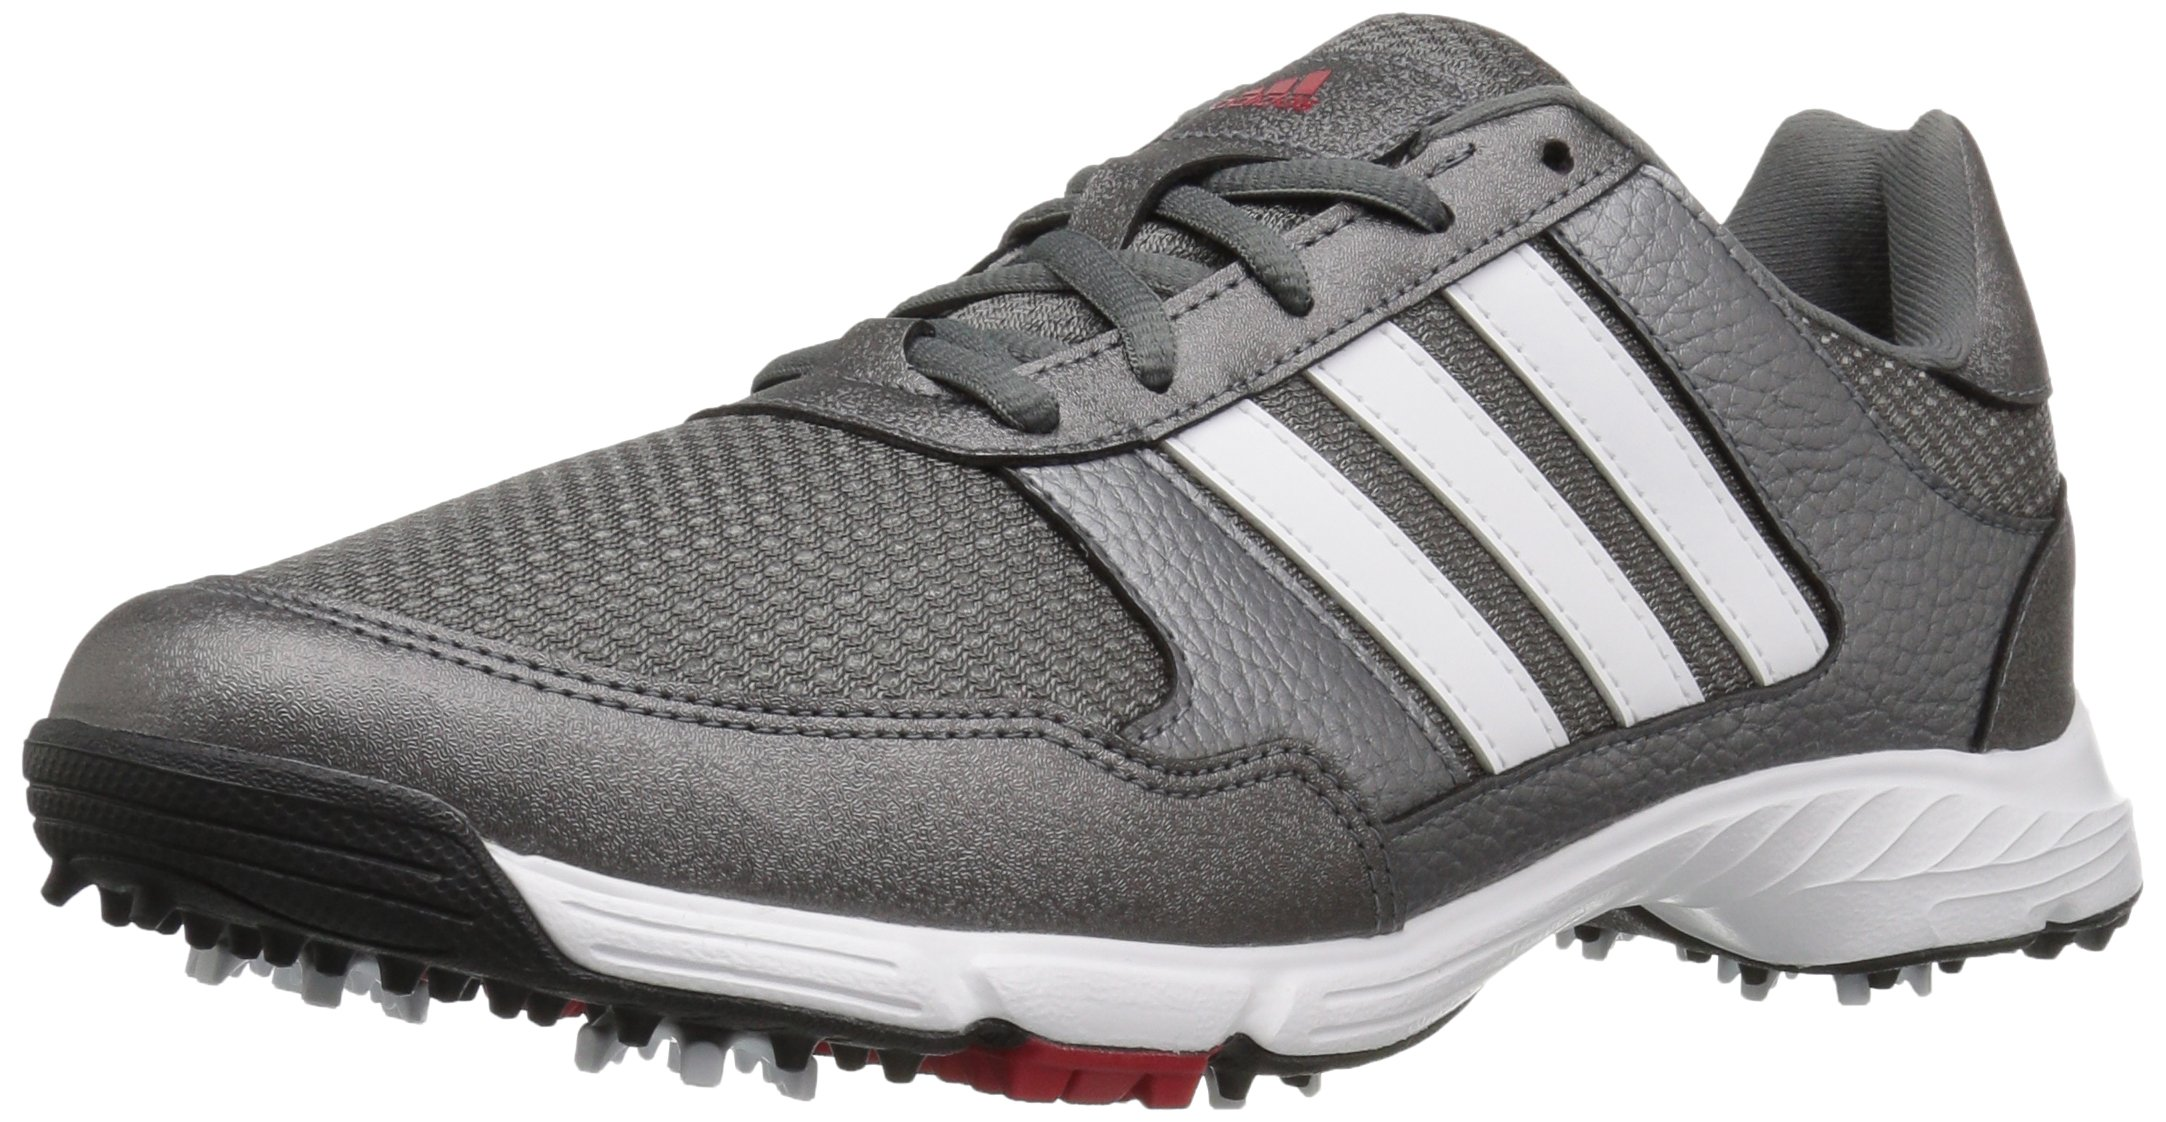 adidas Men's Tech Response Golf Shoe, Iron Metallic/White, 14 W US